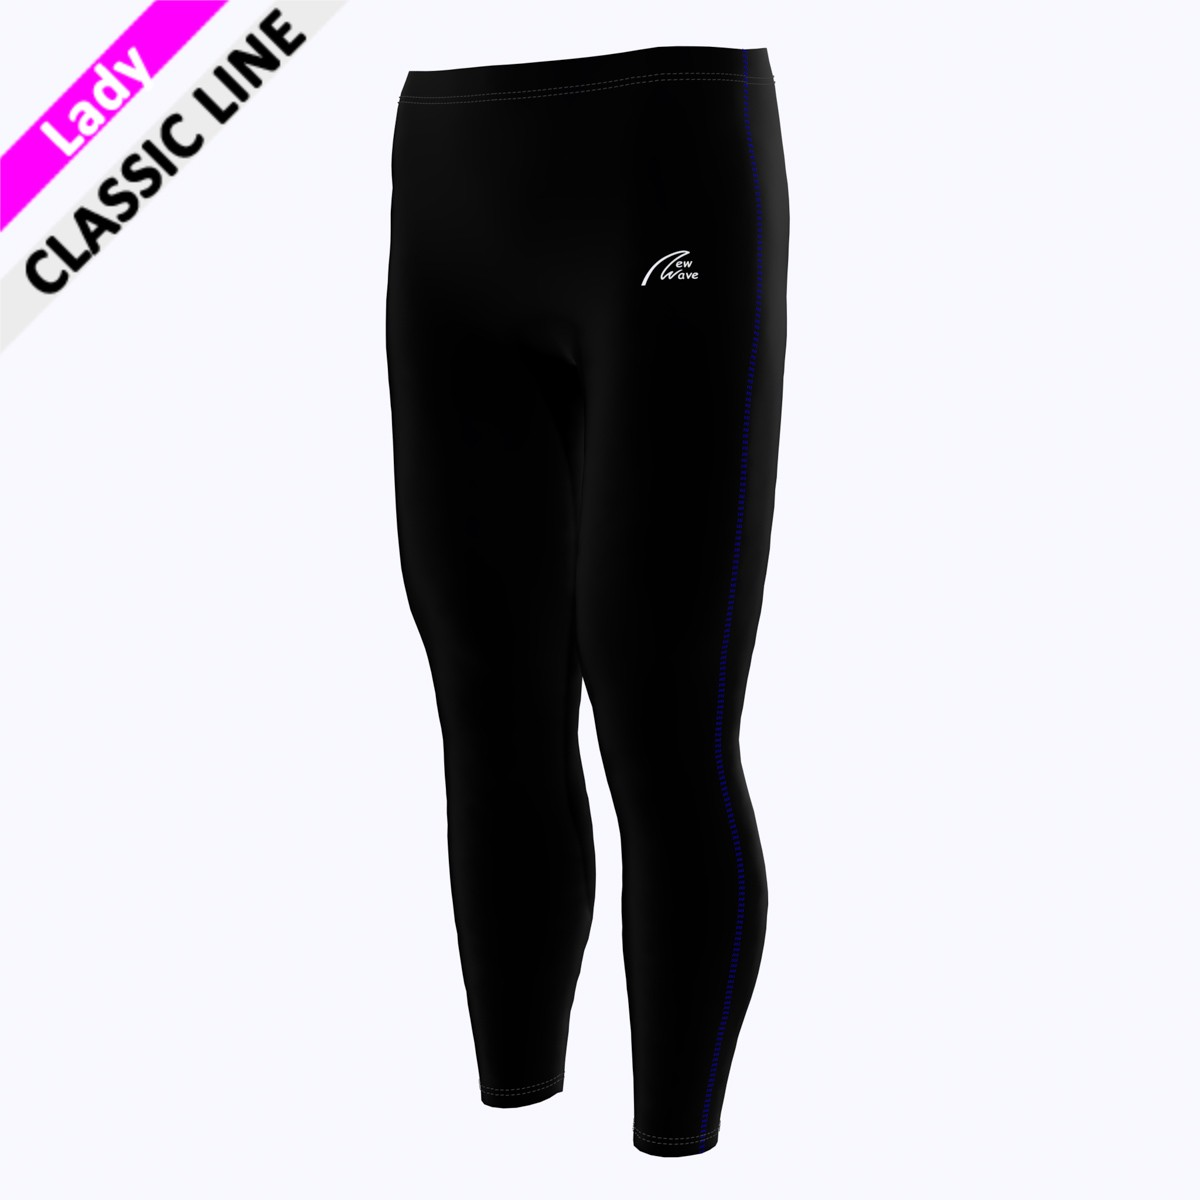 Coloured Seam Tight - royal blau F  (Hose - schwarz / Seitennaht - royal blau)